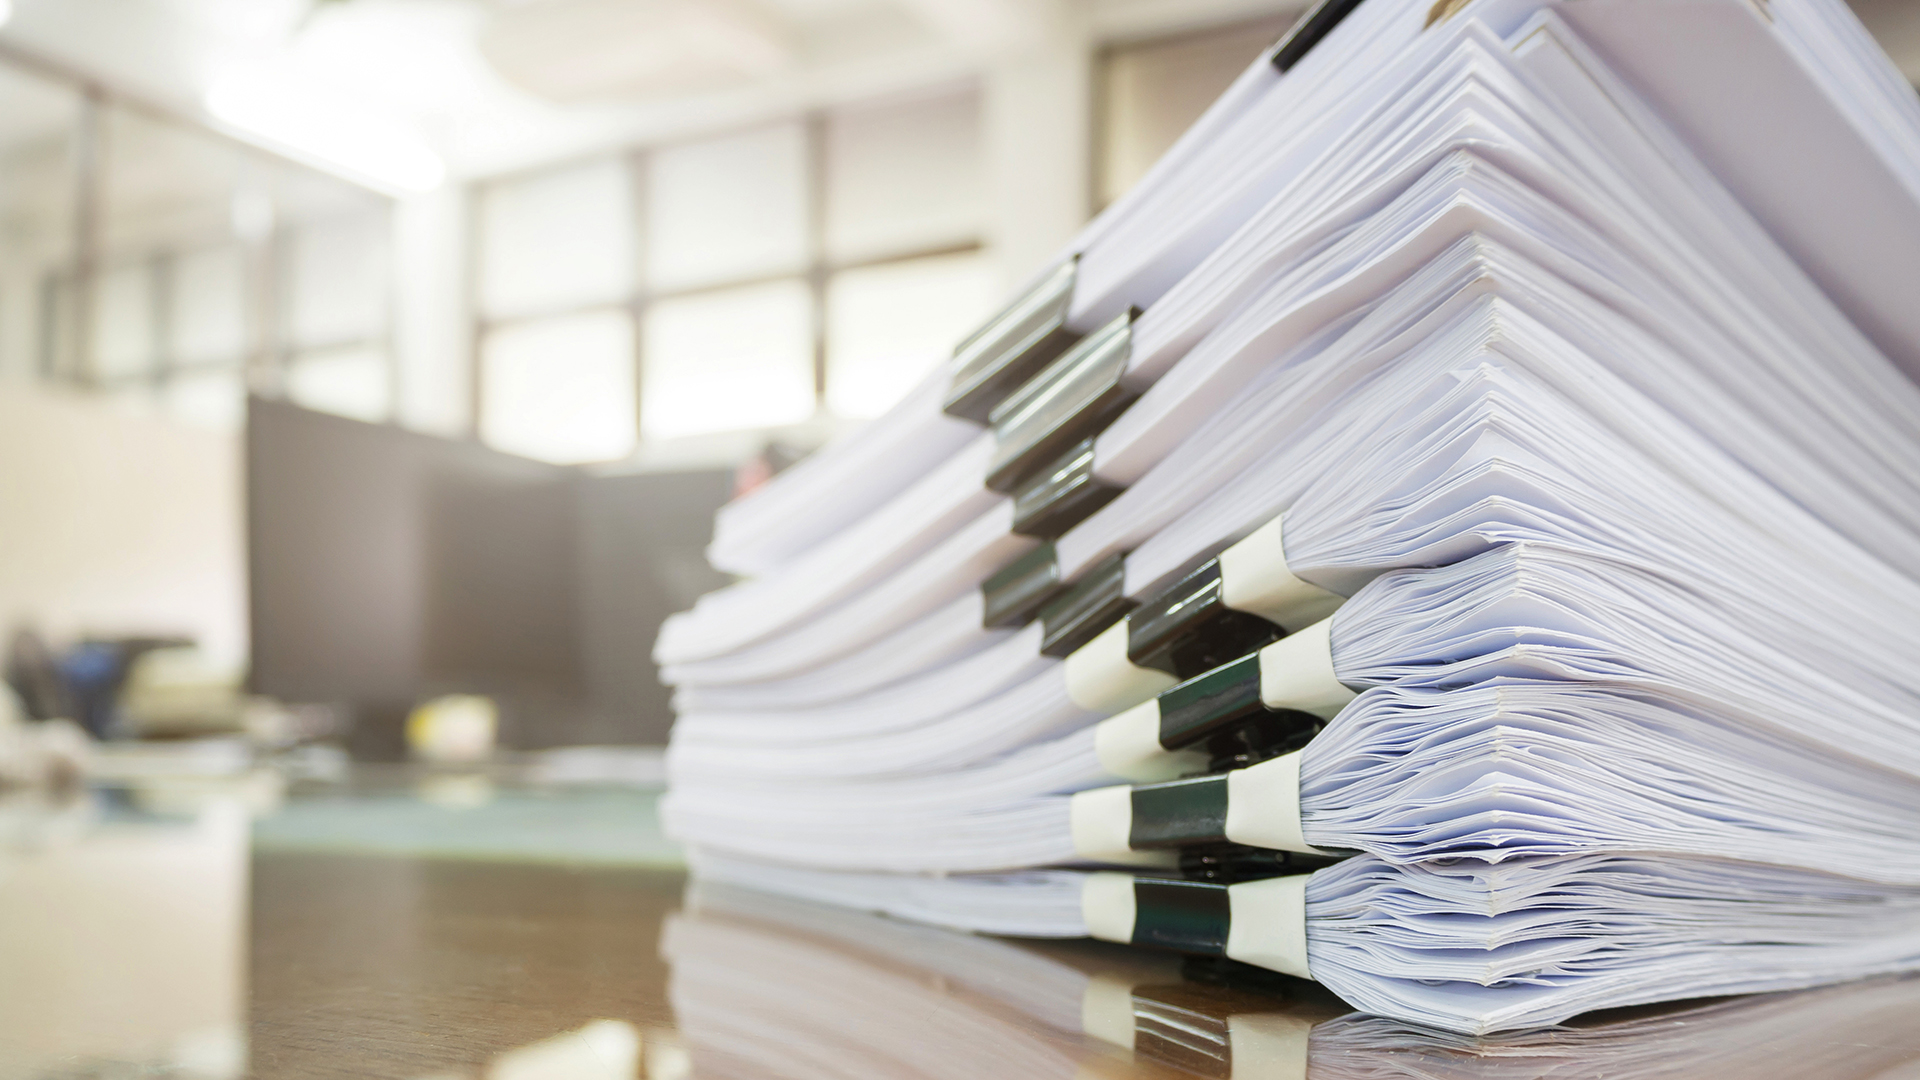 Stack of documents on a desk